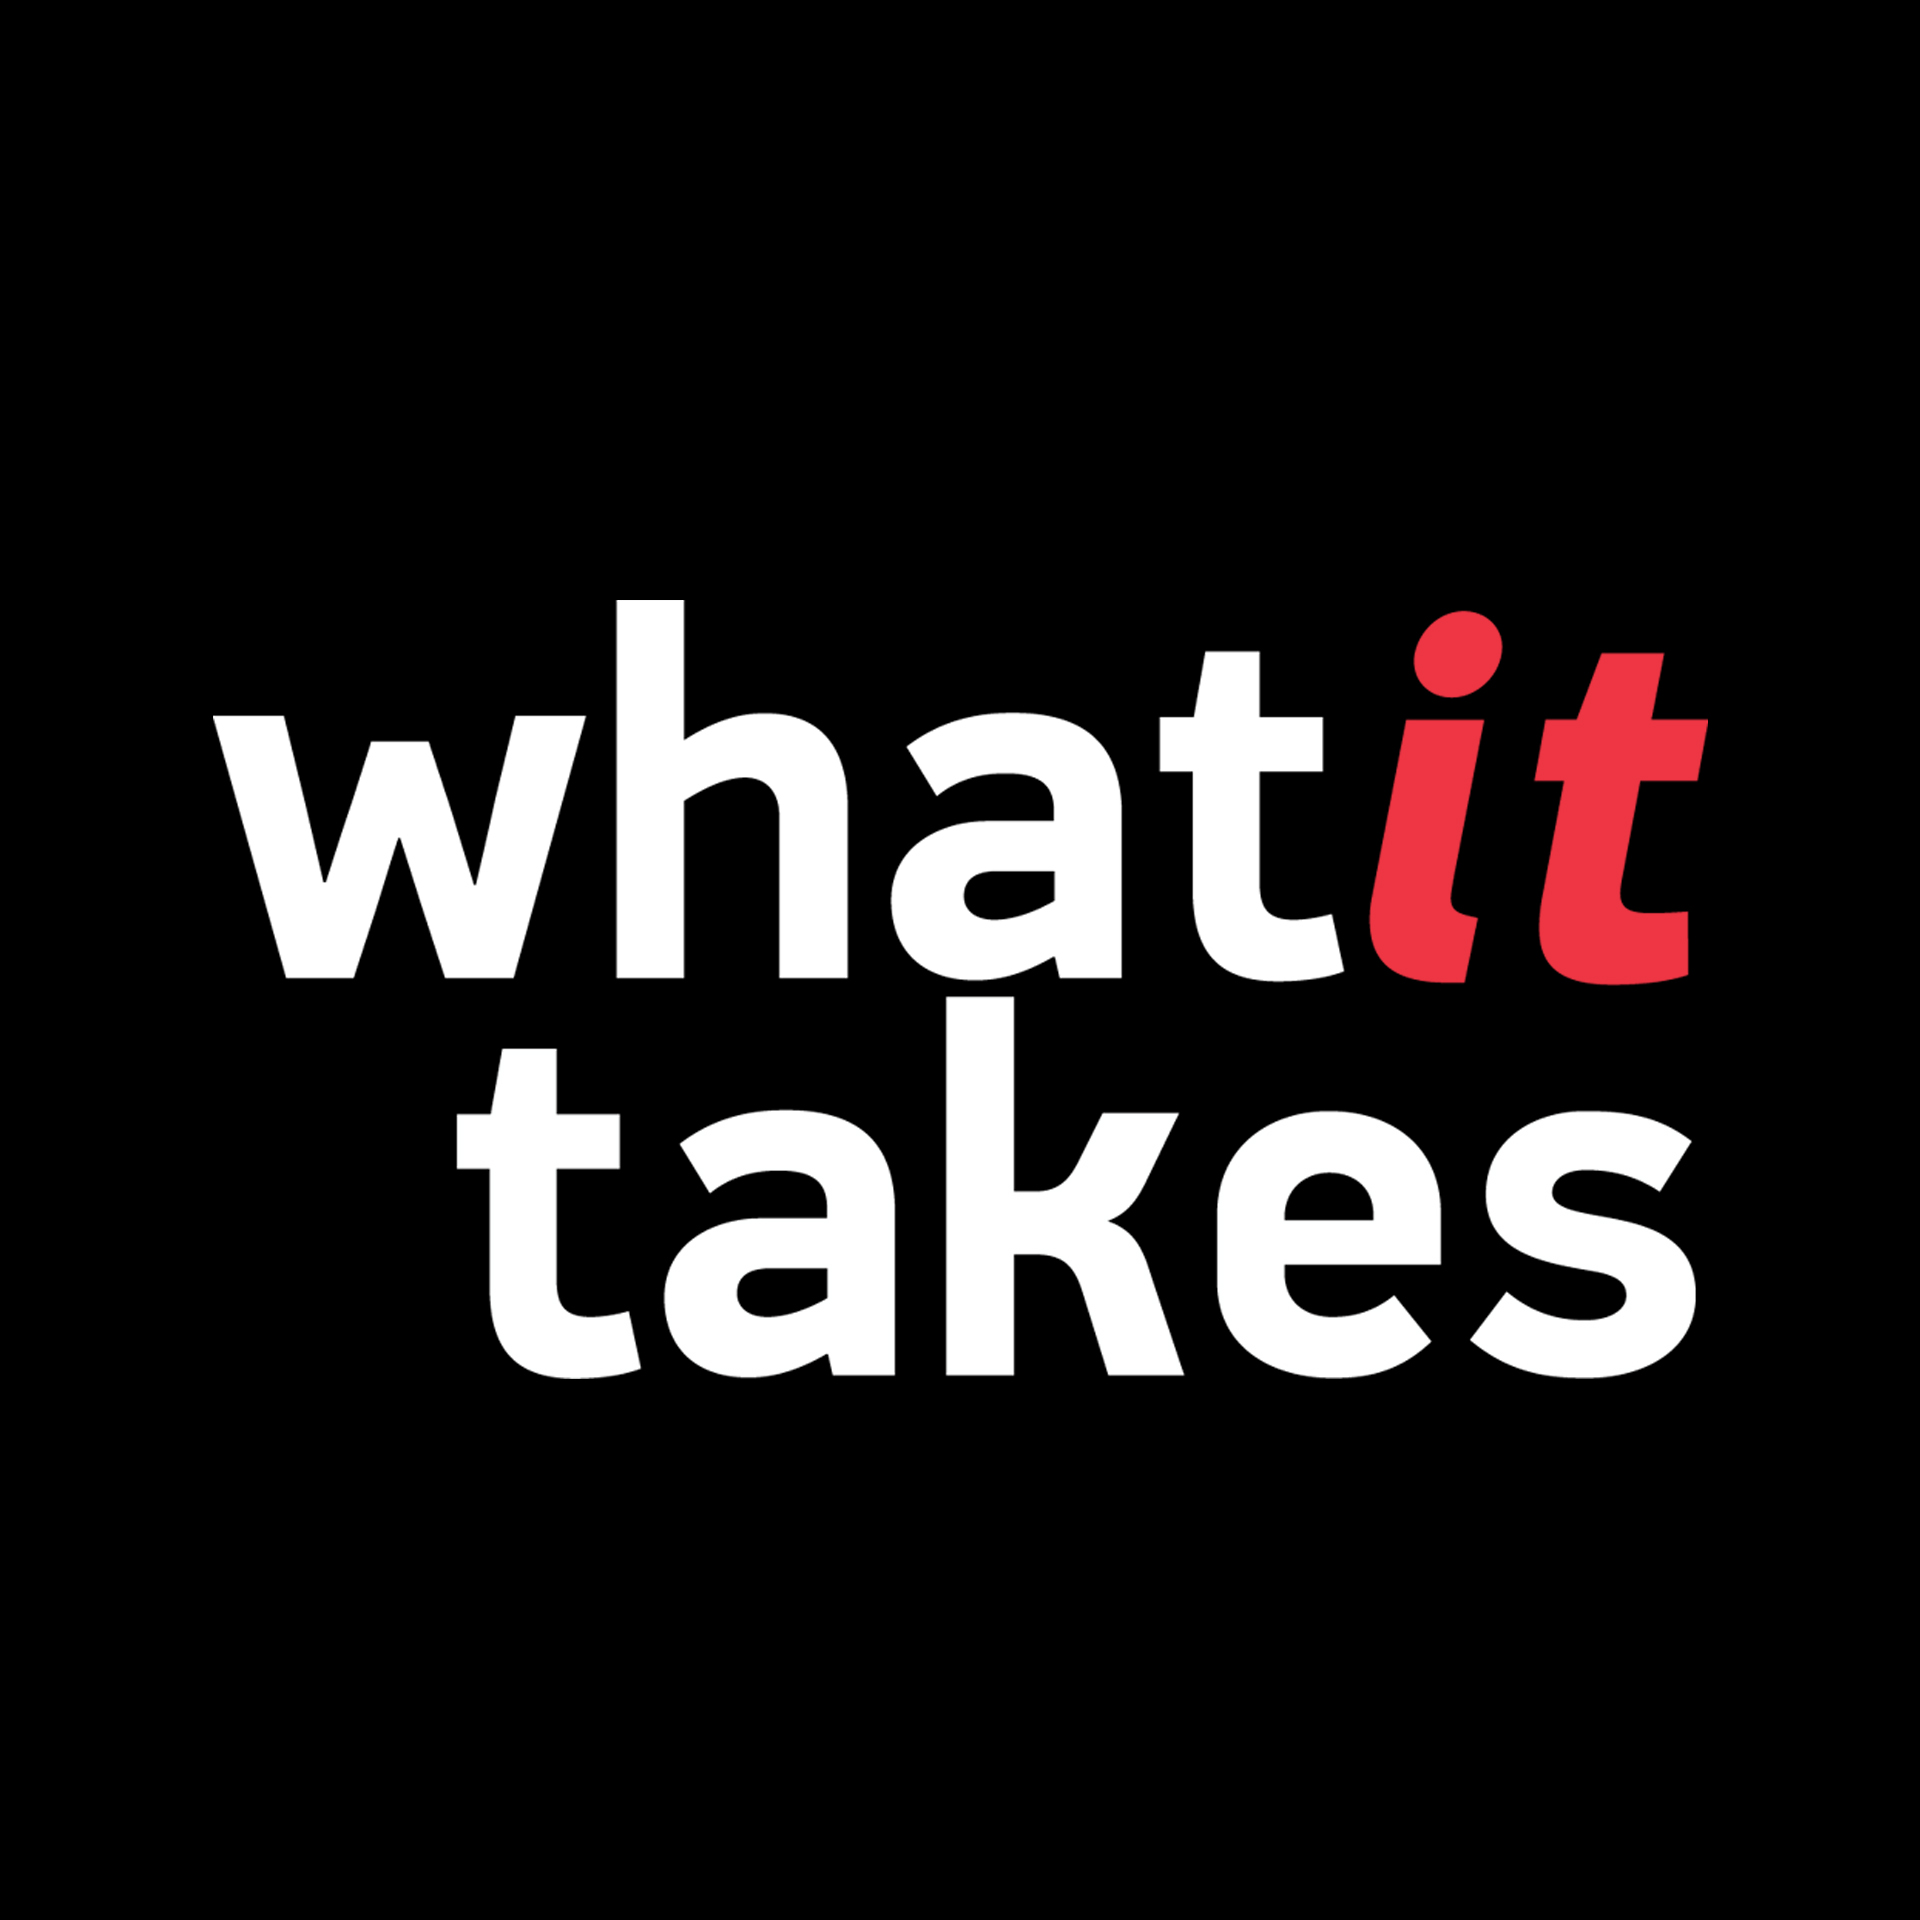 What It Takes - From the American Academy of Achievement, these intimate interviews take you into the personal lives of the pioneers in public service, arts, sports, business, science and technology. Oprah has a two-part episode and the episode with Lauryn Hill was relevant then, relevant today and will be relevant forever. Convinced yet?Everything is everything.